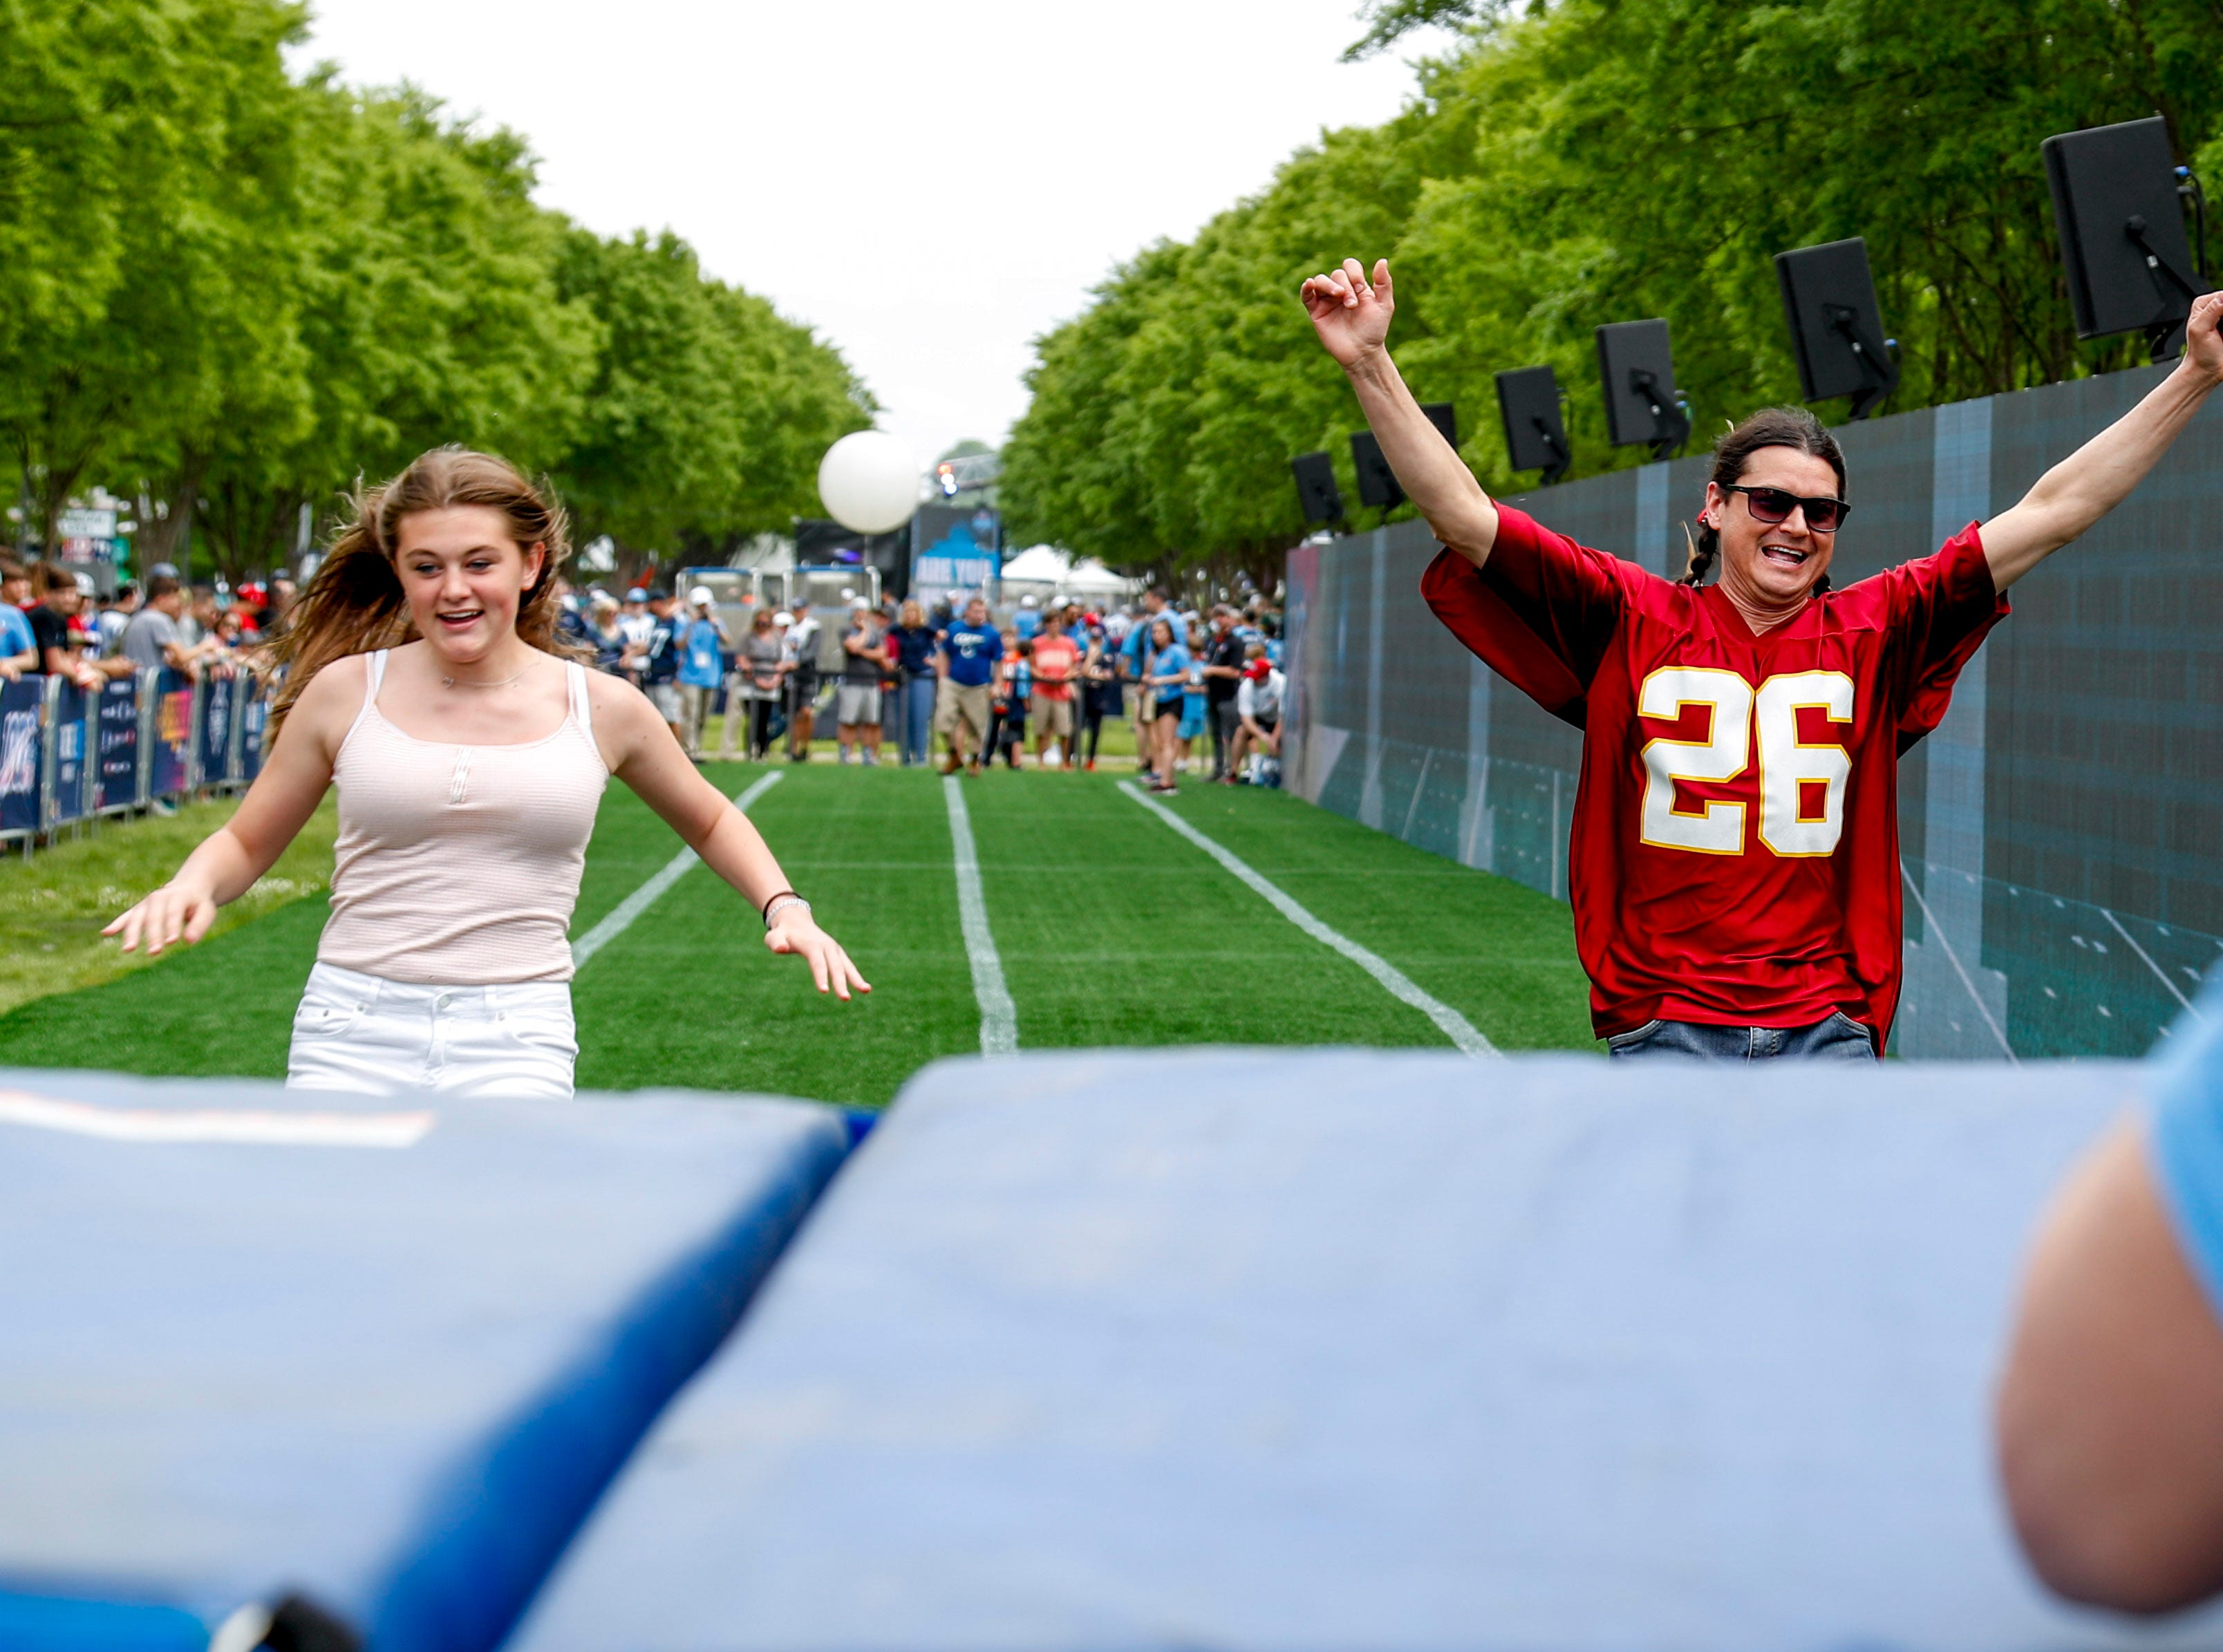 Fans celebrate when running into the giant pads at the end of the 40 yard dash during the NFL Draft Experience at Nissan Stadium in Nashville, Tenn., on Thursday, April 25, 2019.